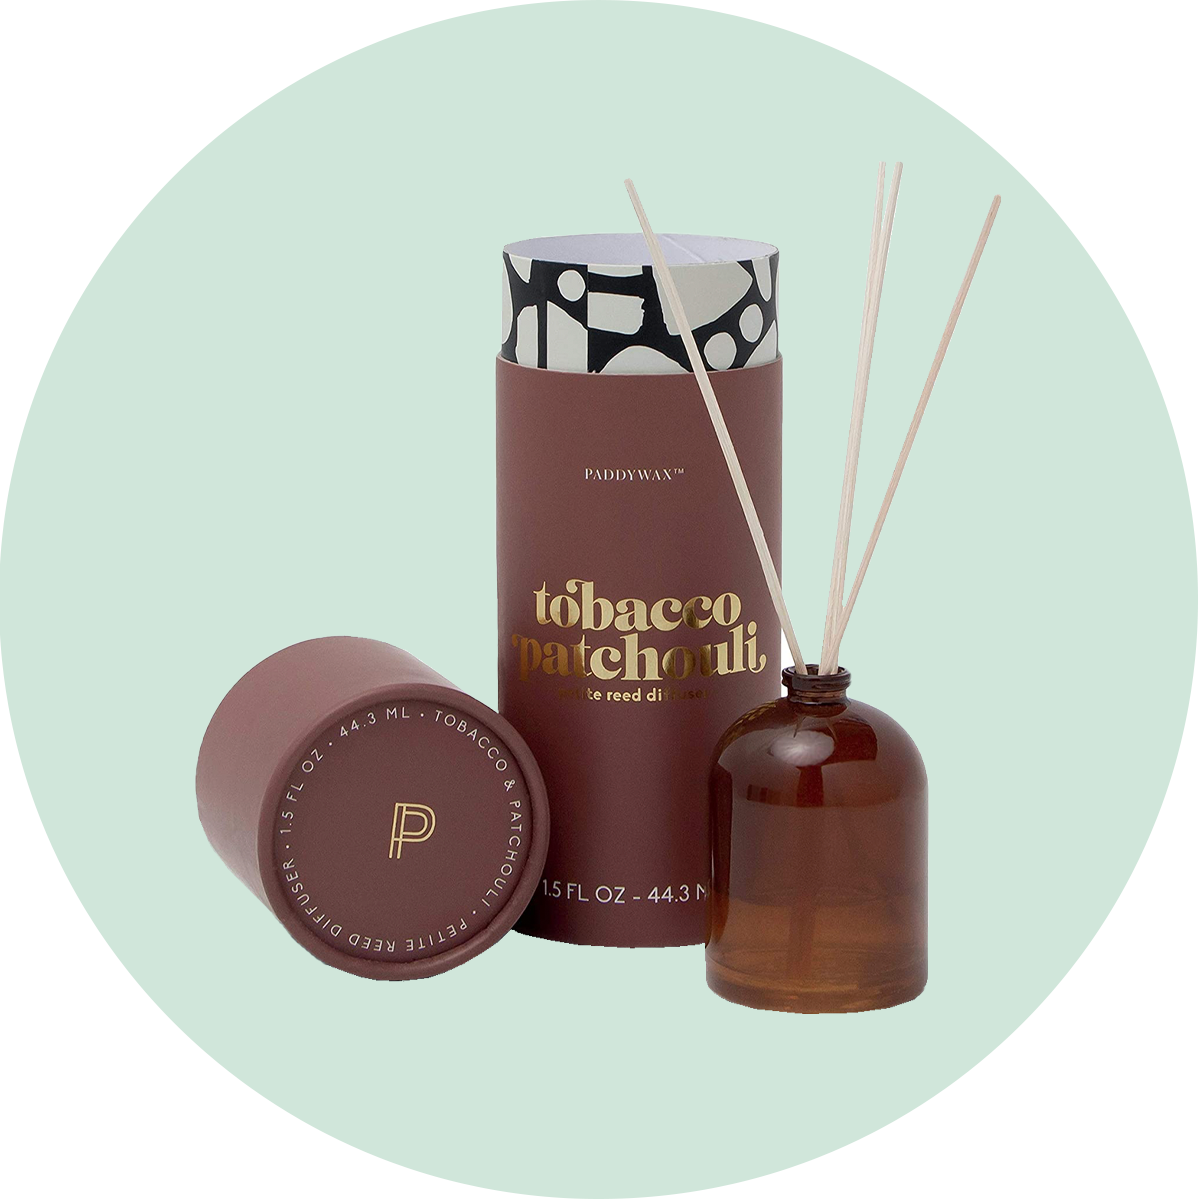 Paddywax Mini Reed Diffuser Tobacco & Patchouli